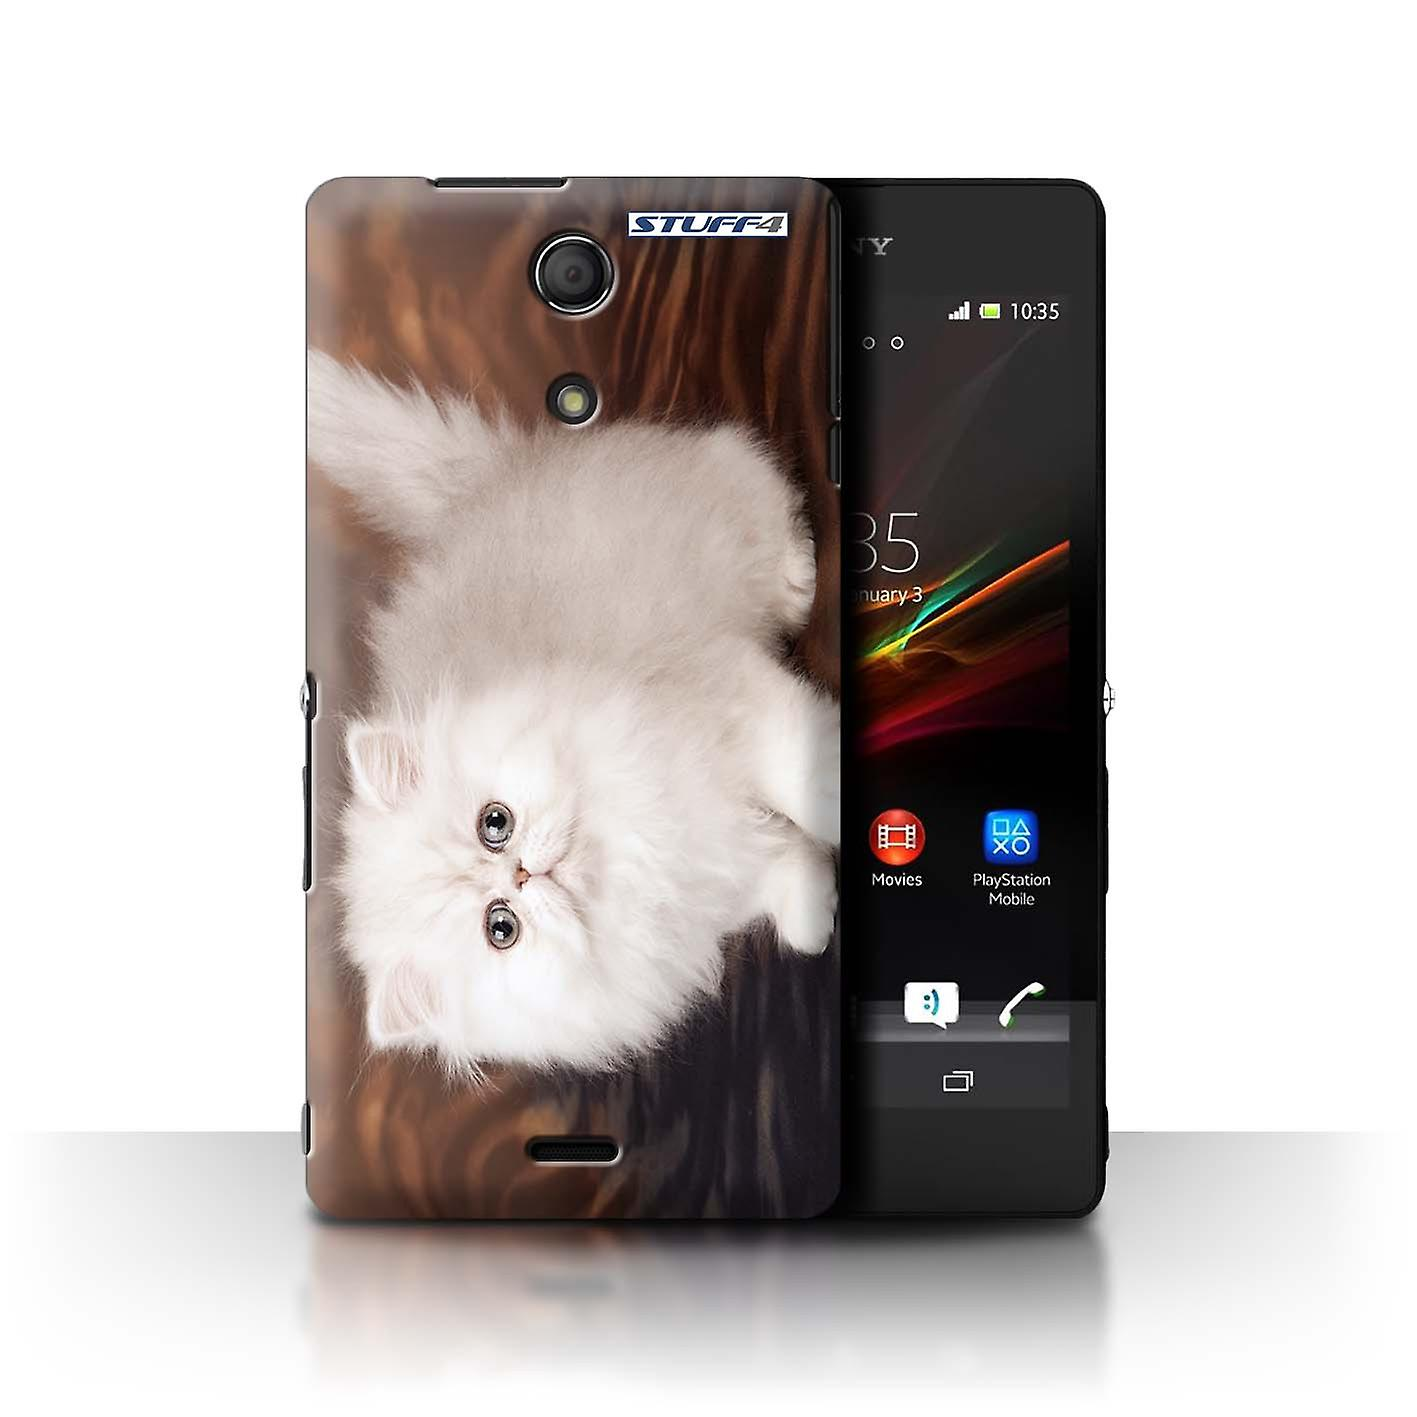 STUFF4 Case Cover for Sony Xperia ZR White & Fluffy Cute Kittens Stuff4 Housses pour téléphones mobiles